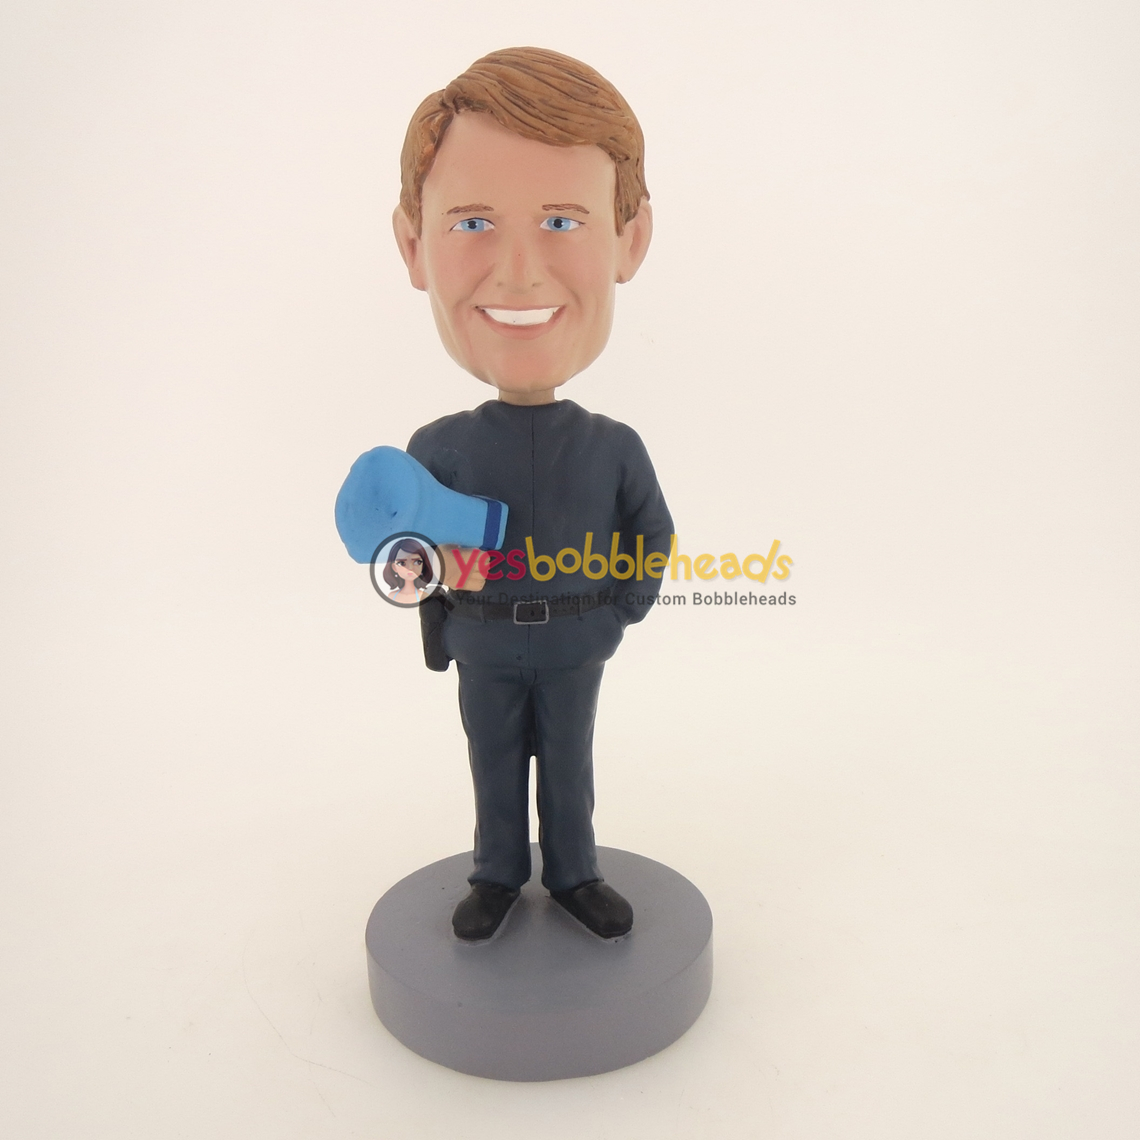 Picture of Custom Bobblehead Doll: Man And Horn